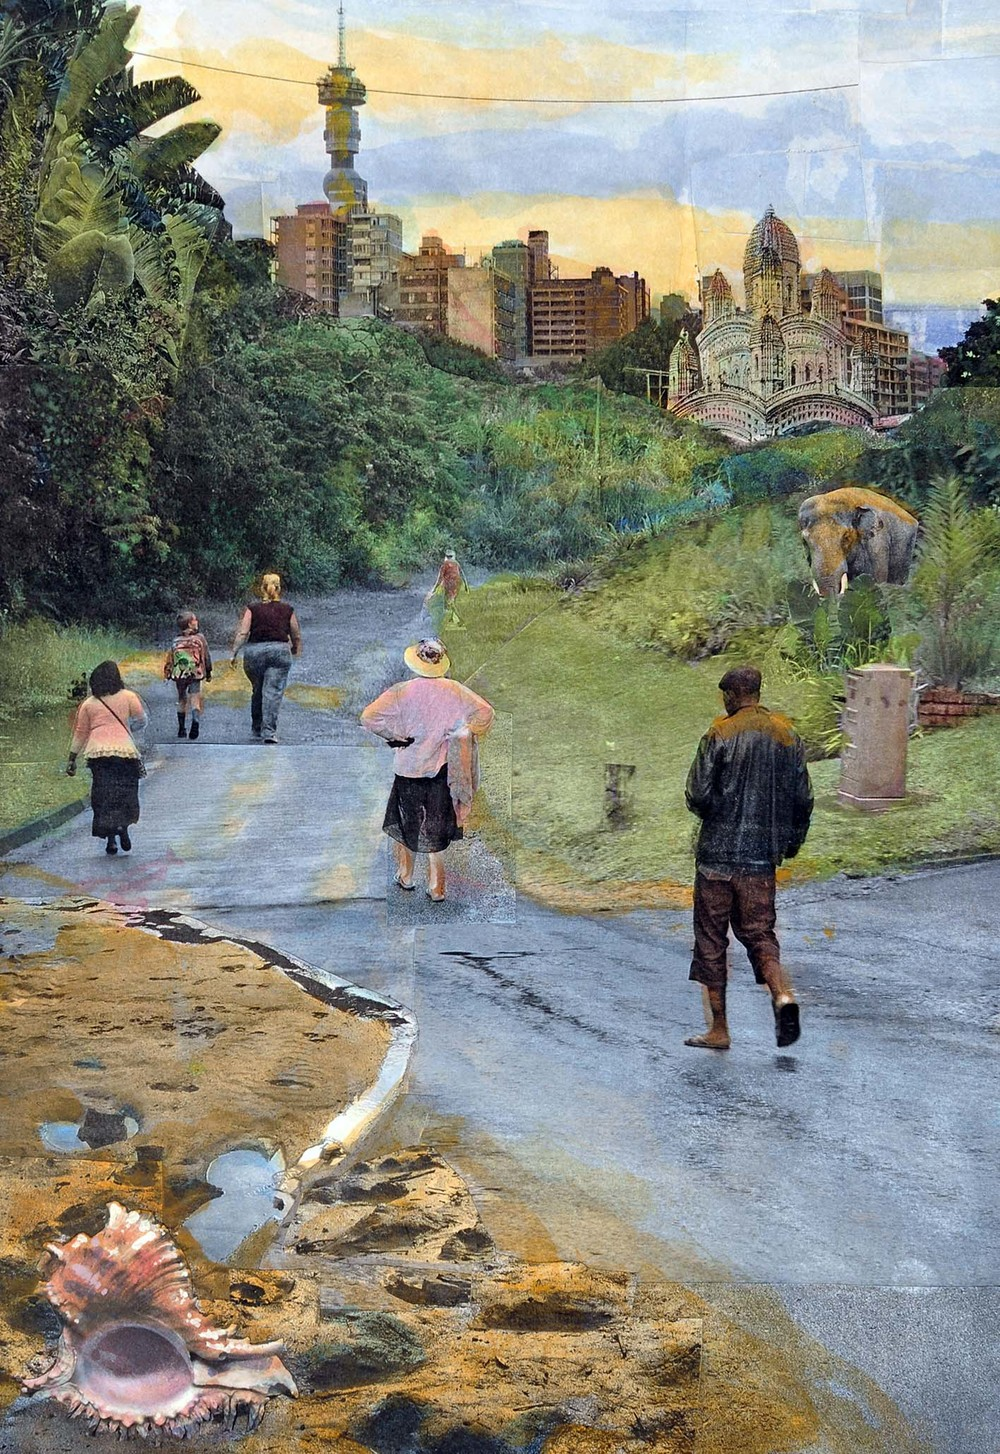 The Beachside Path to Port Shepstone, 2015, hand-colored collaged photography by Vivian van Blerk.jpg